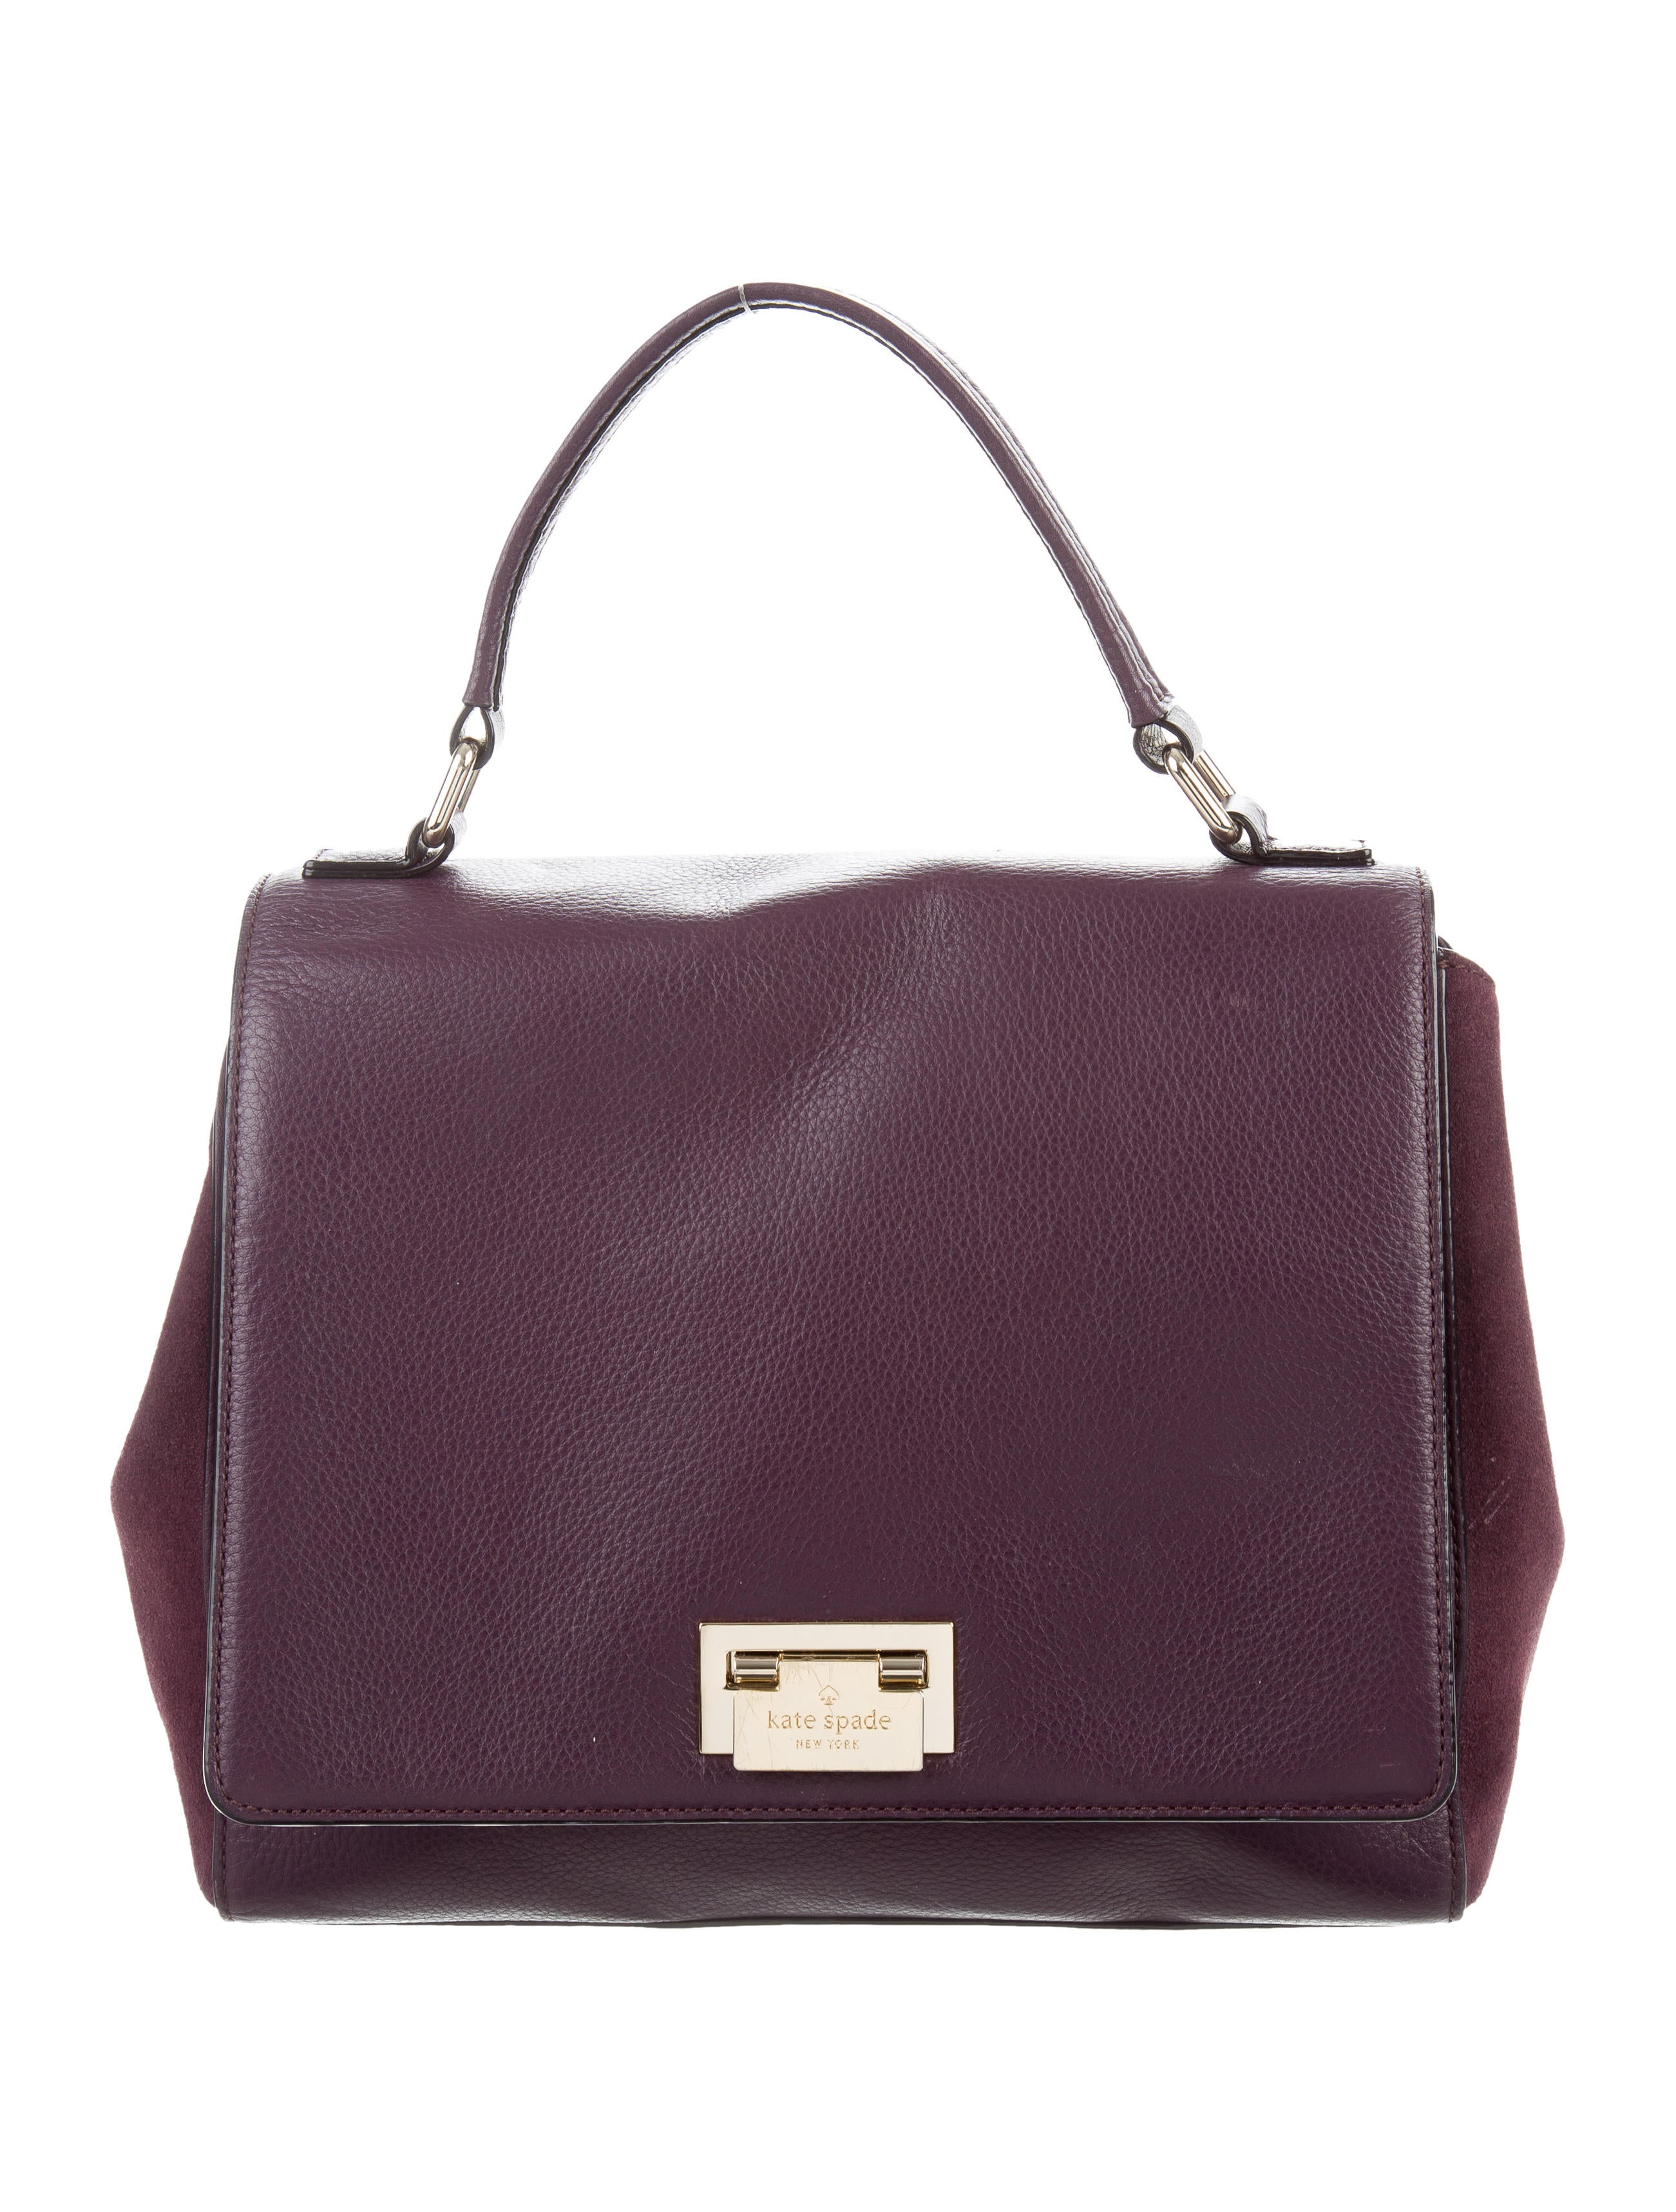 Kate Spade New York Magnolia Park Suede Laurel Bag  : WKA689301enlarged from www.therealreal.com size 2602 x 3434 jpeg 691kB